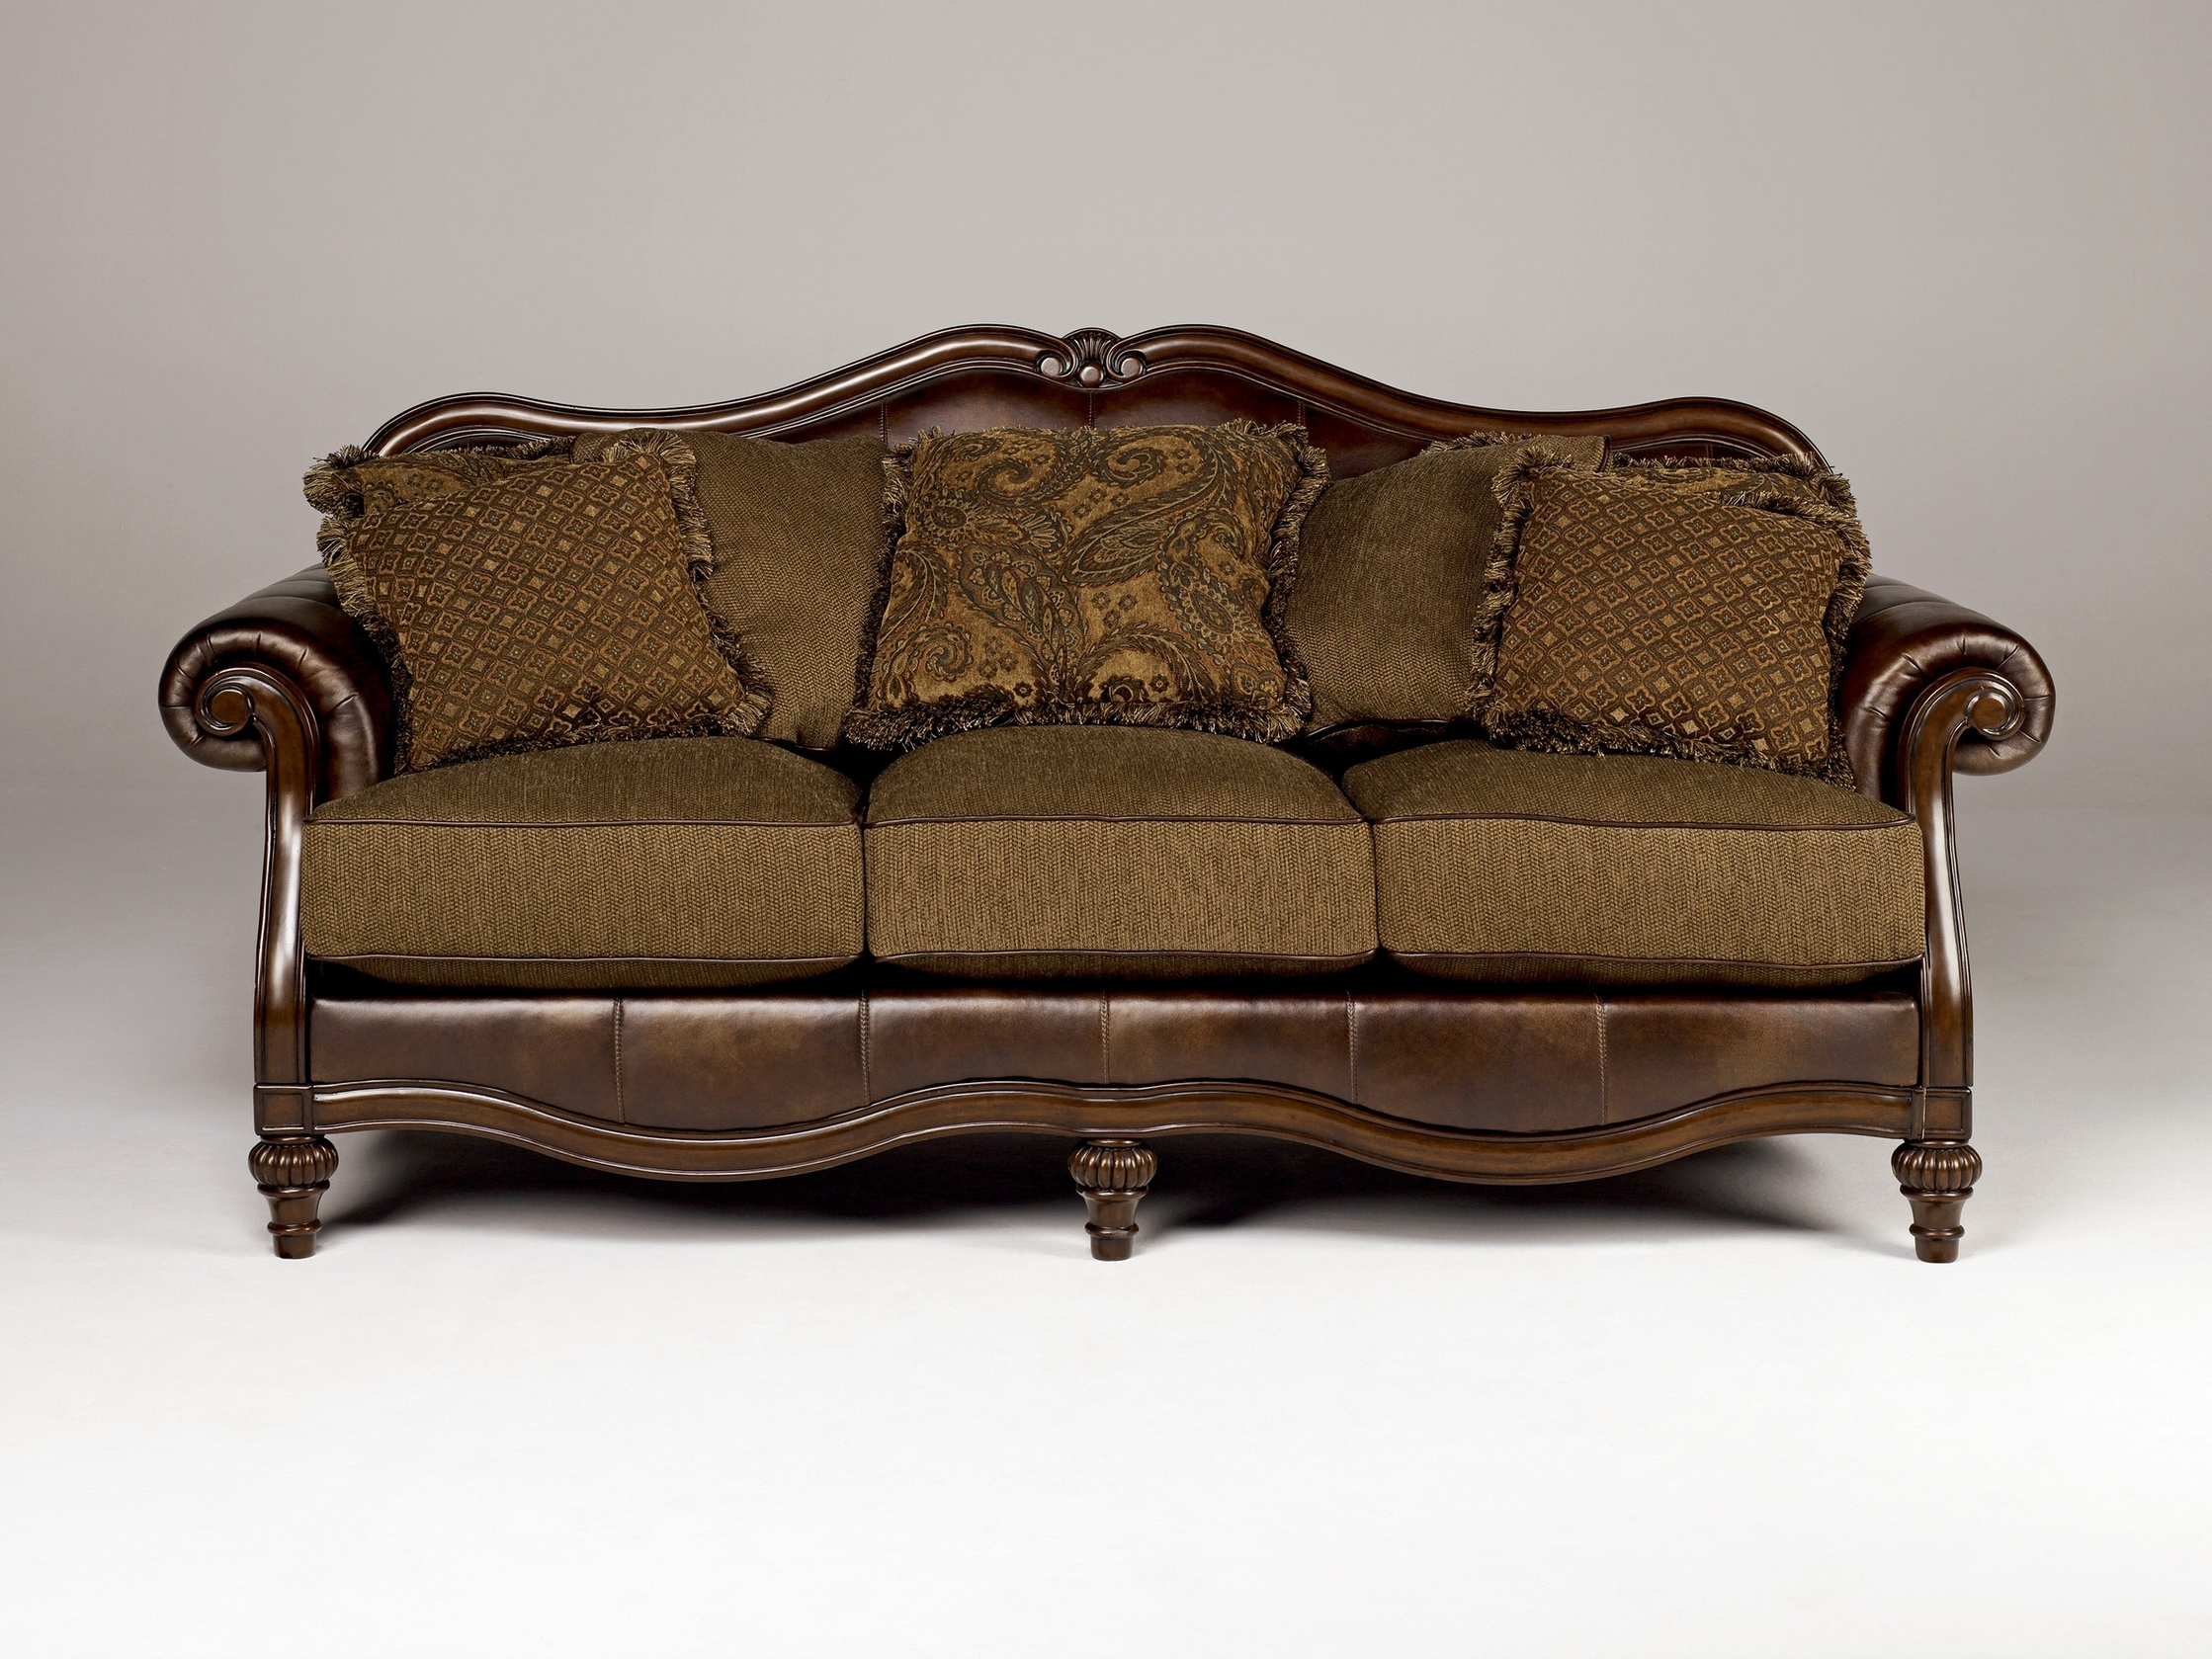 Truffle Traditional Sofa Set Old World Couch Wood Trim Cozy Fabric Regarding Best And Newest Chintz Sofas And Chairs (View 10 of 20)